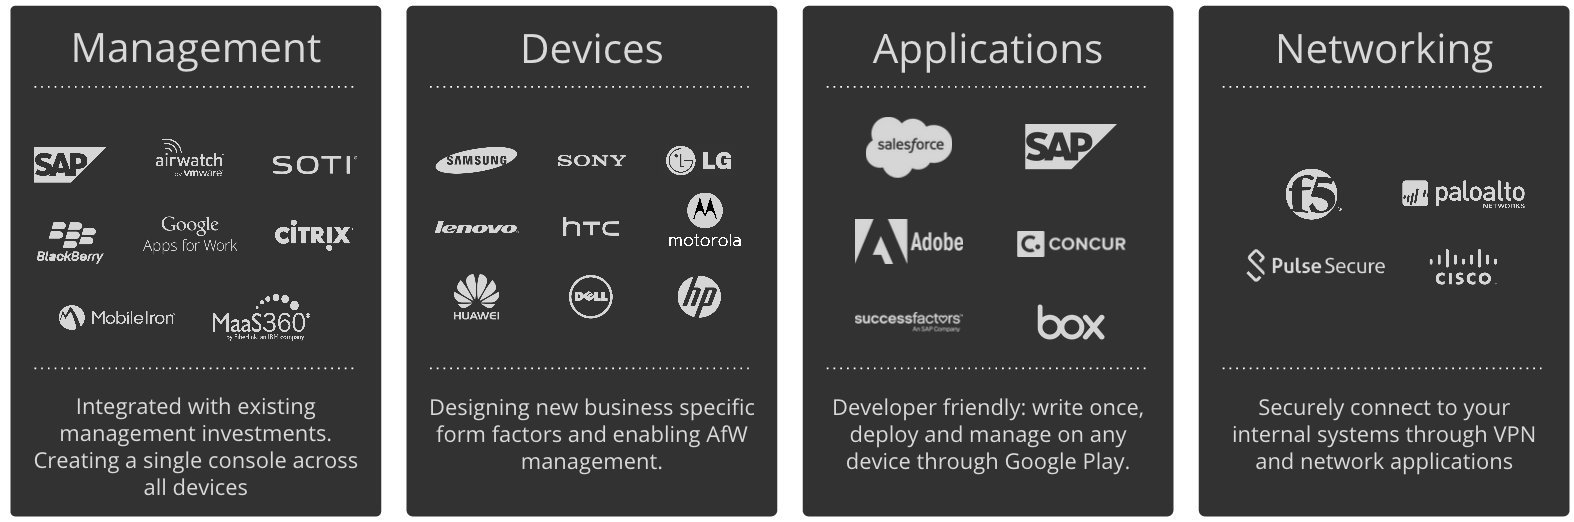 Official Google Cloud Blog: Android is ready for work